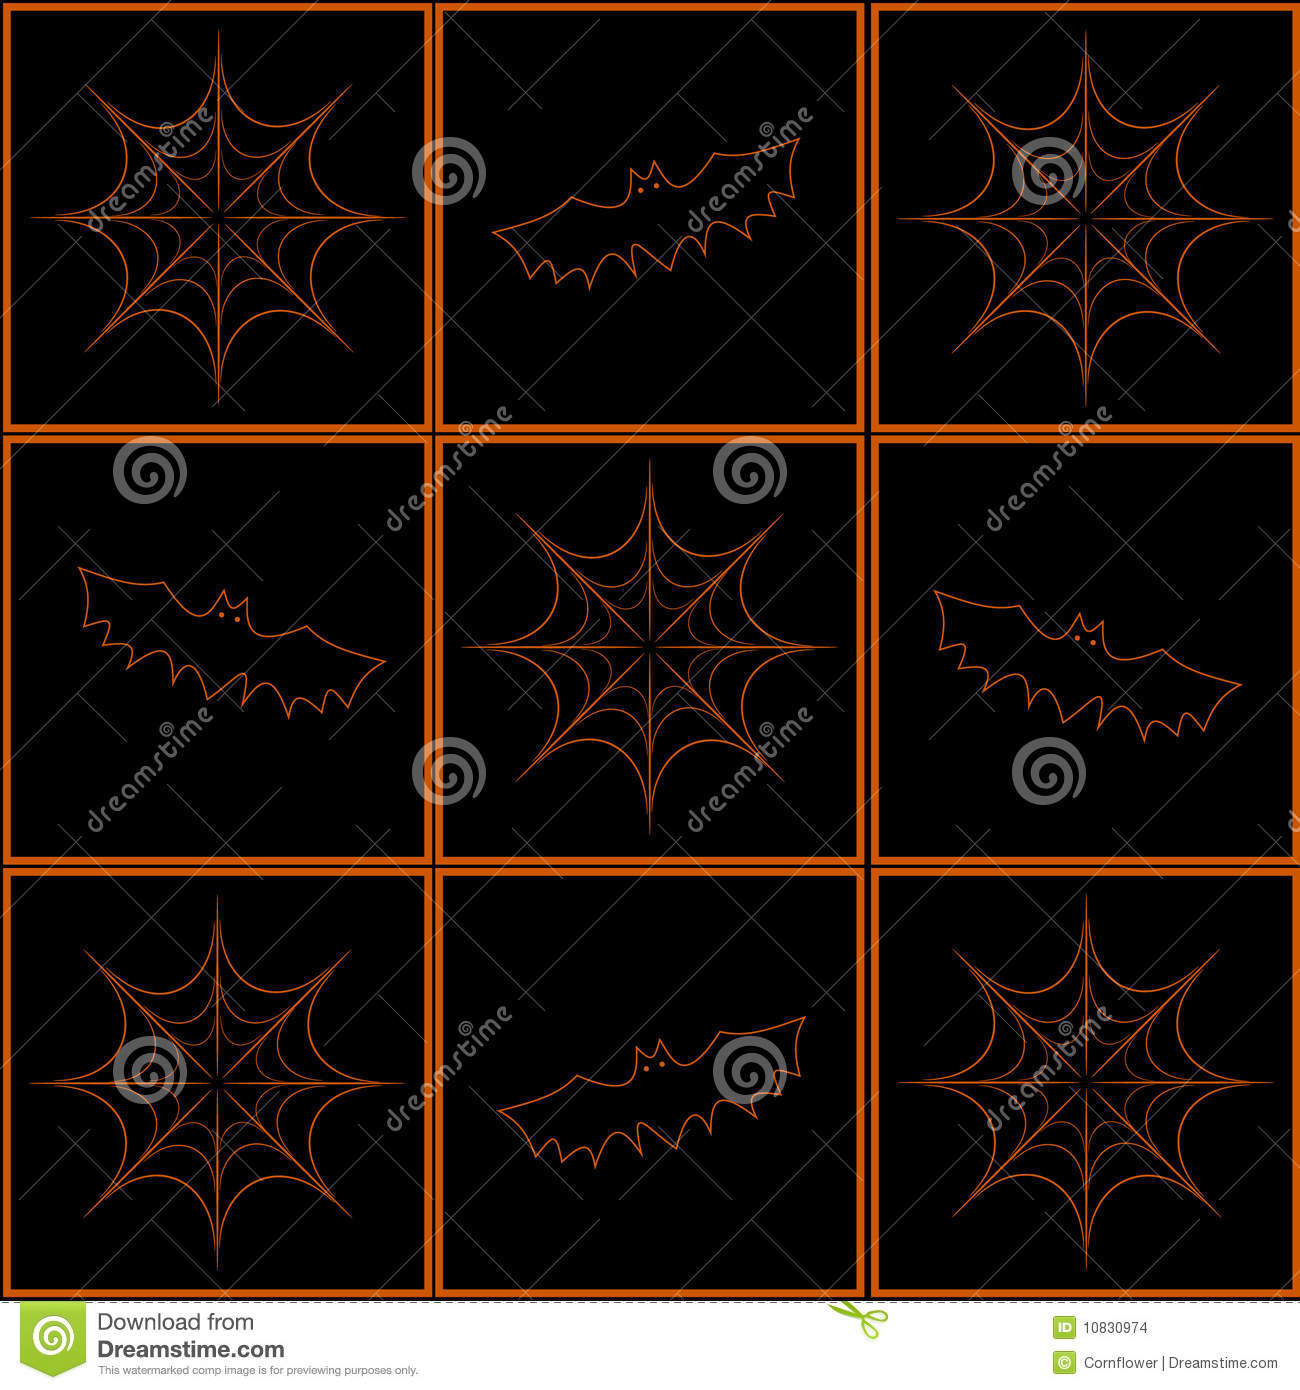 Background With Bats And Cobweb Stock Images - Image: 10830974